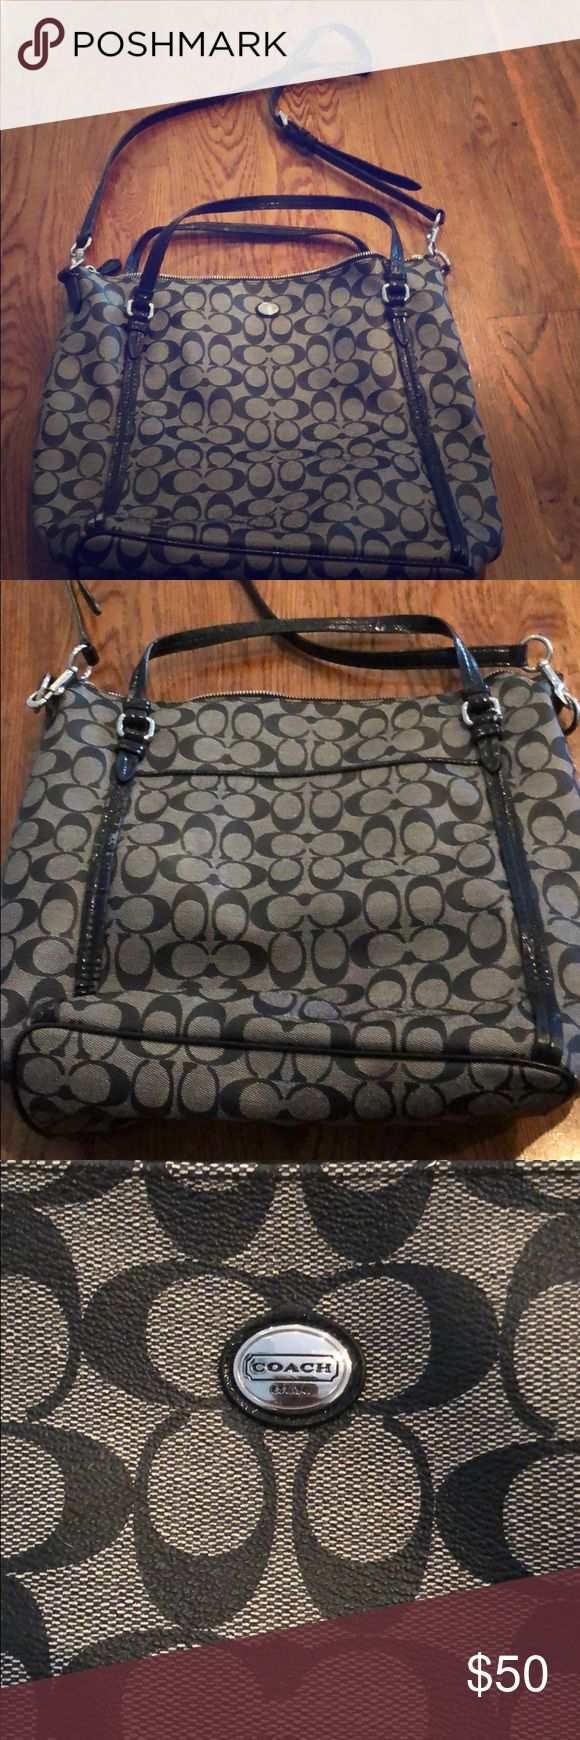 Huge black Coach purse Big black Coach purse; shoulder strap well worn as shown in picture and small stain in the inside as seen otherwise in good condition Coach Bags Hobos